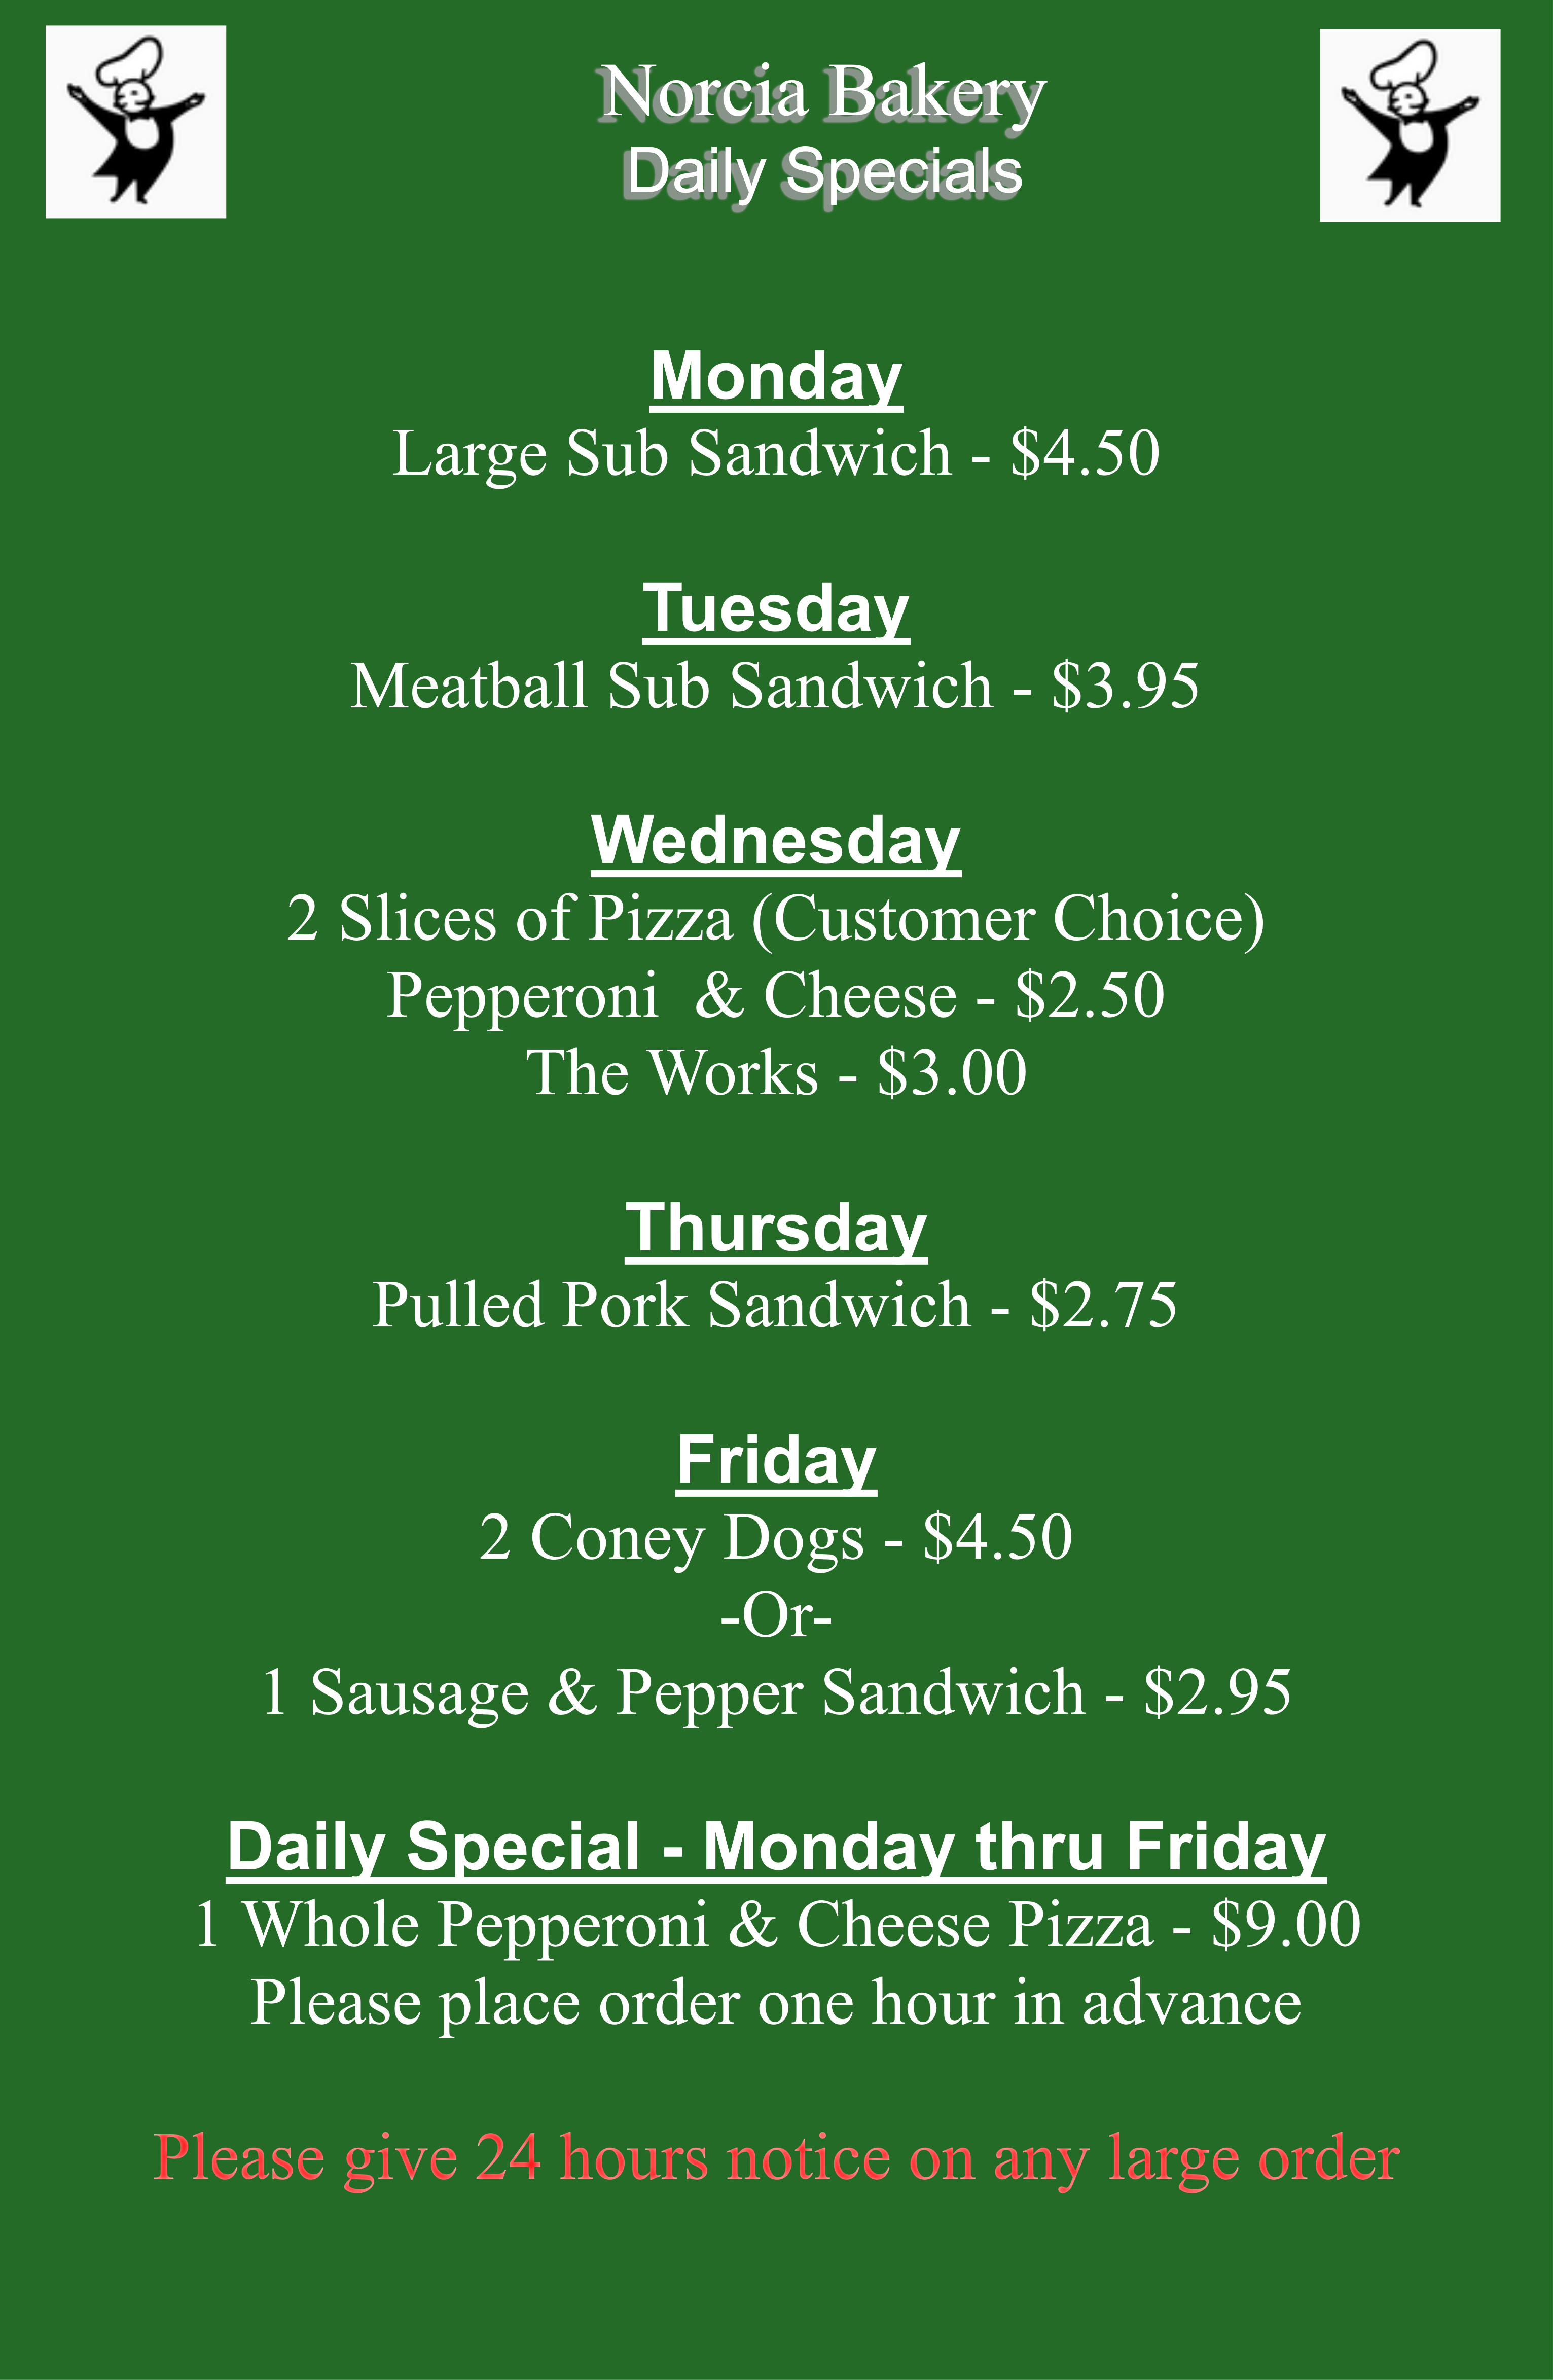 Daily Specials at Norcia Bakery Canton OH